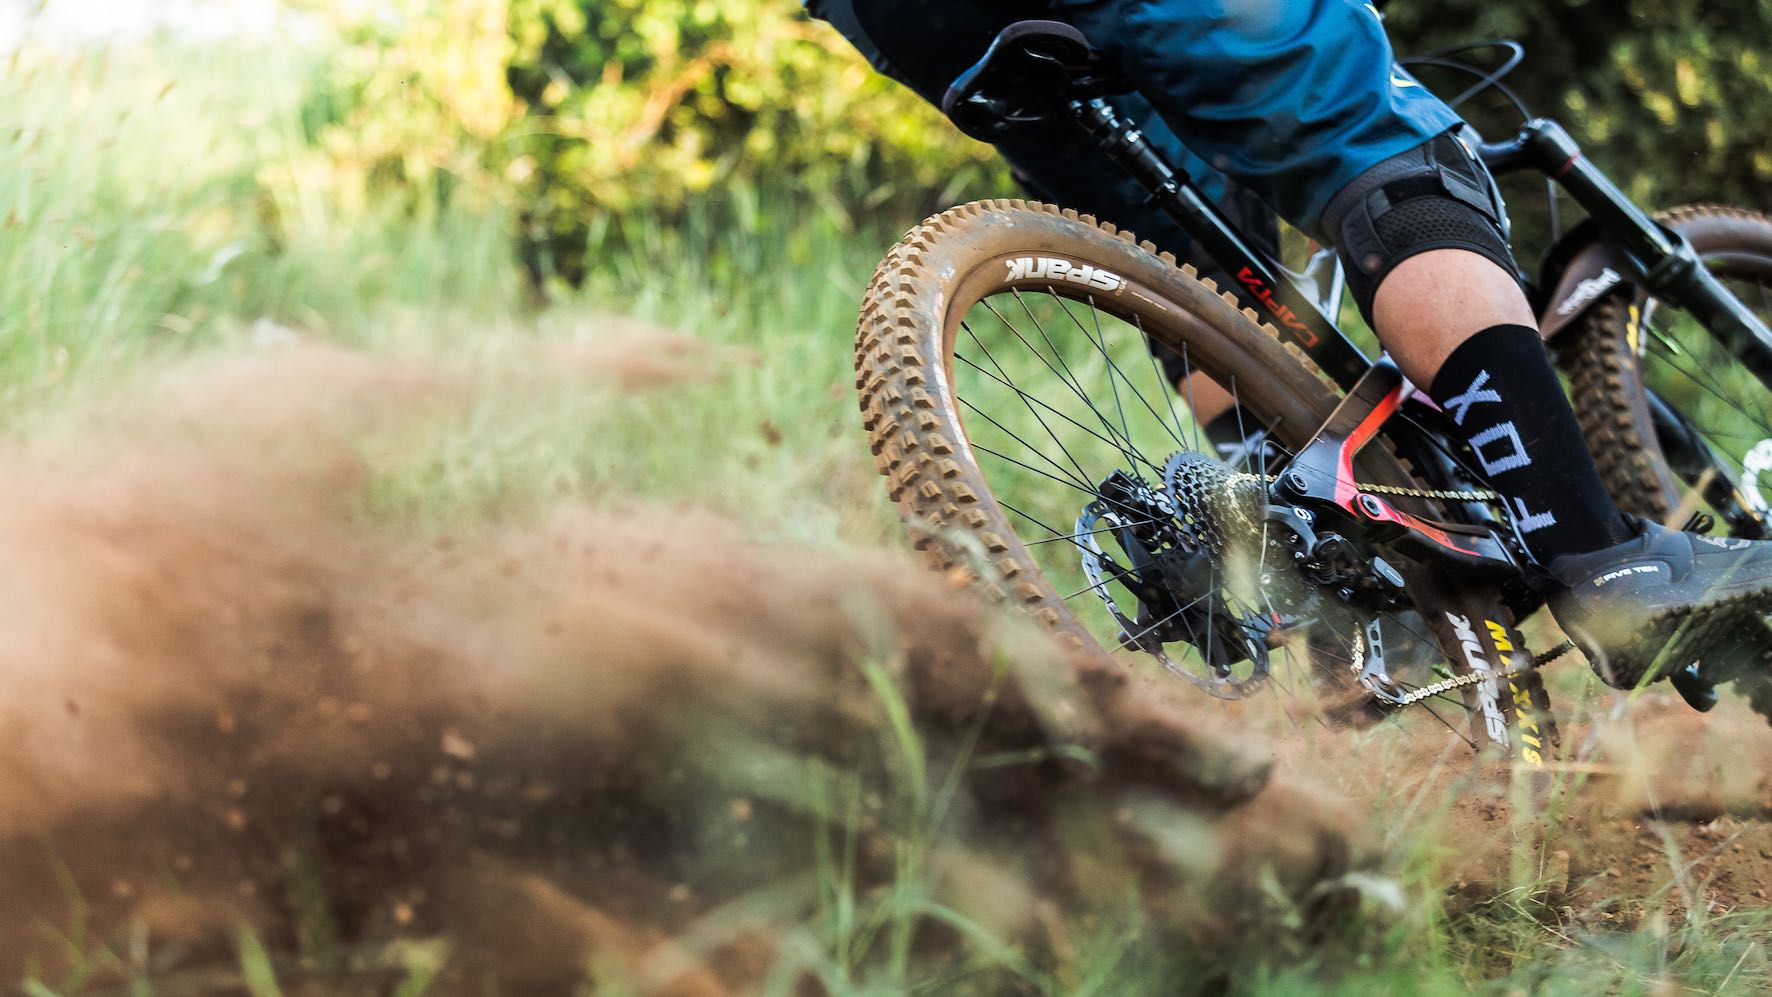 Enduro Mountain Bike riding with the new Spank 350/359 Vibrocore Tuned Wheels